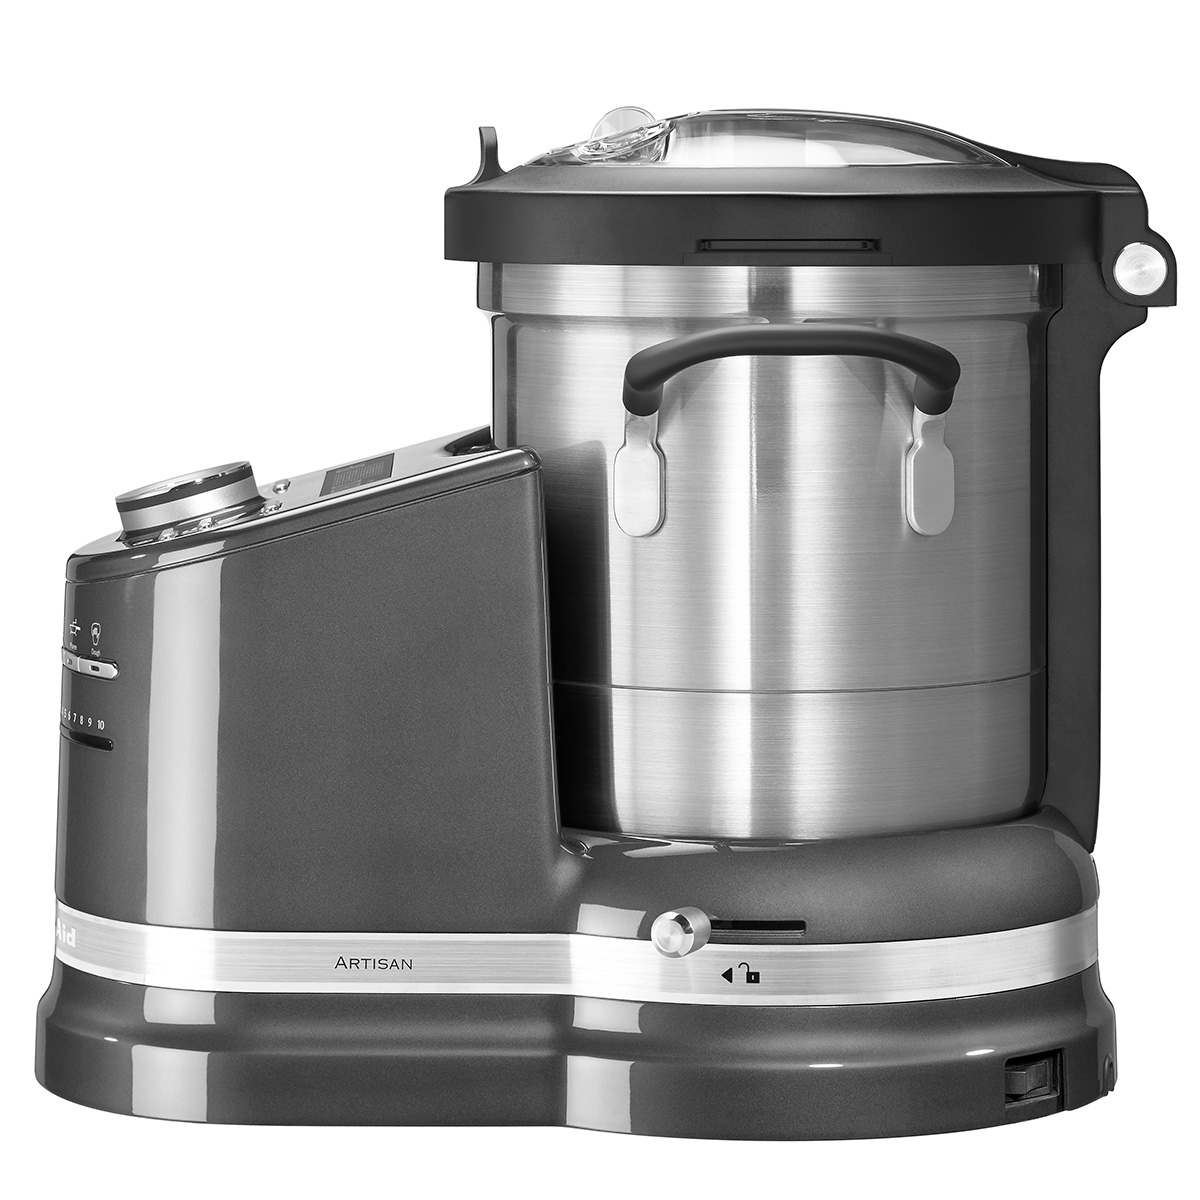 Image of   KitchenAid Cook Processor - Artisan